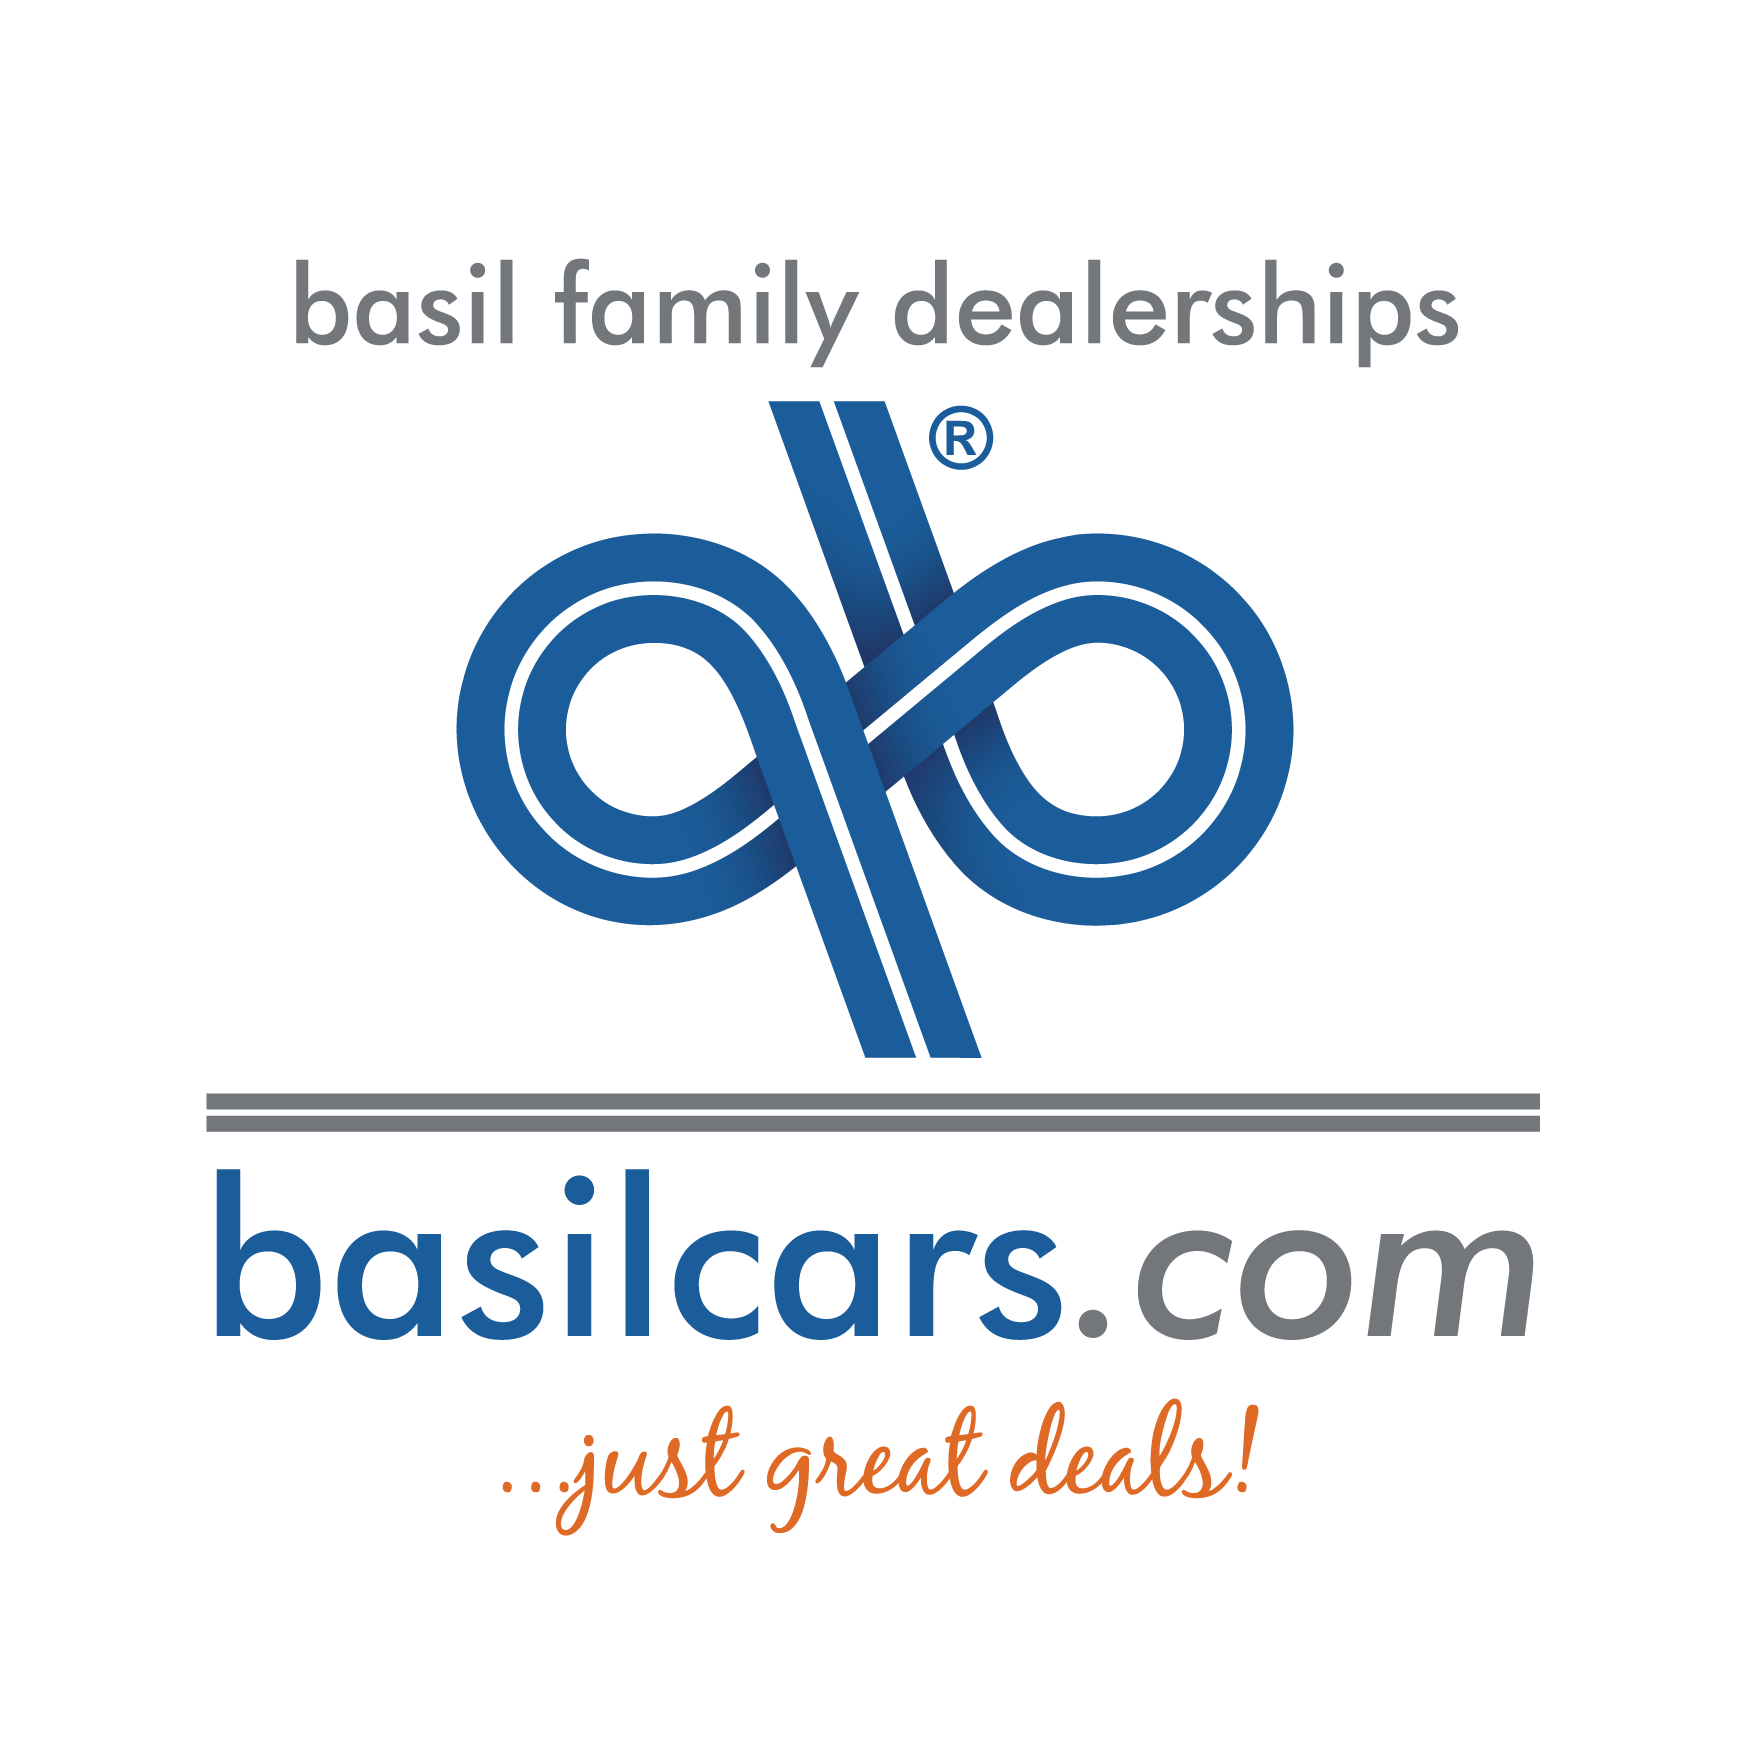 basil design assets basil family dealerships